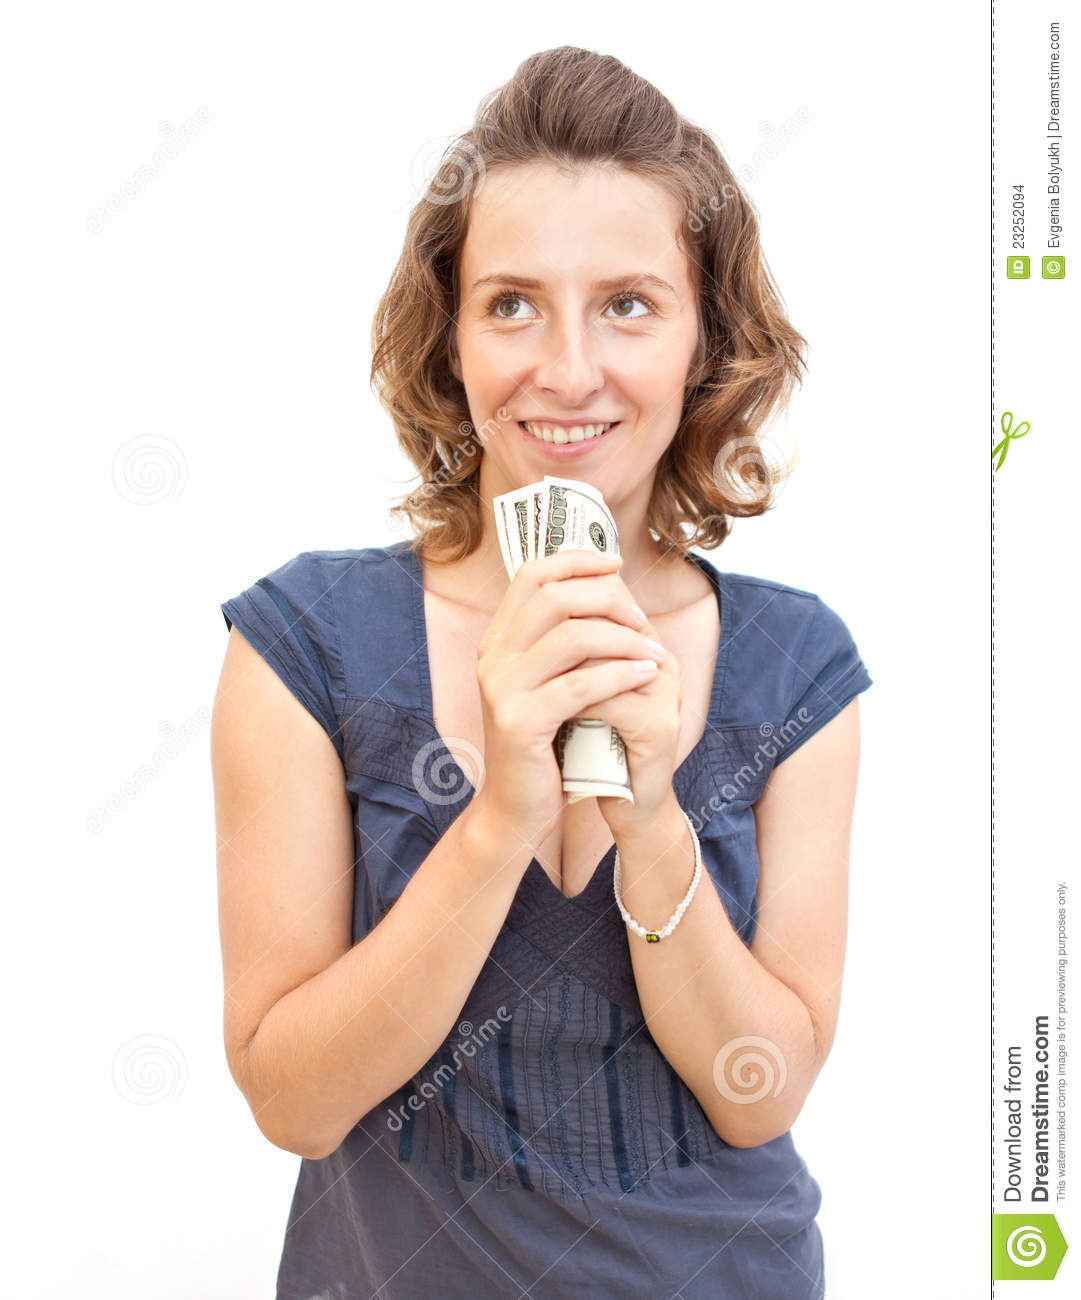 Young Woman Holding Money In Hands Stock Images - Image ...